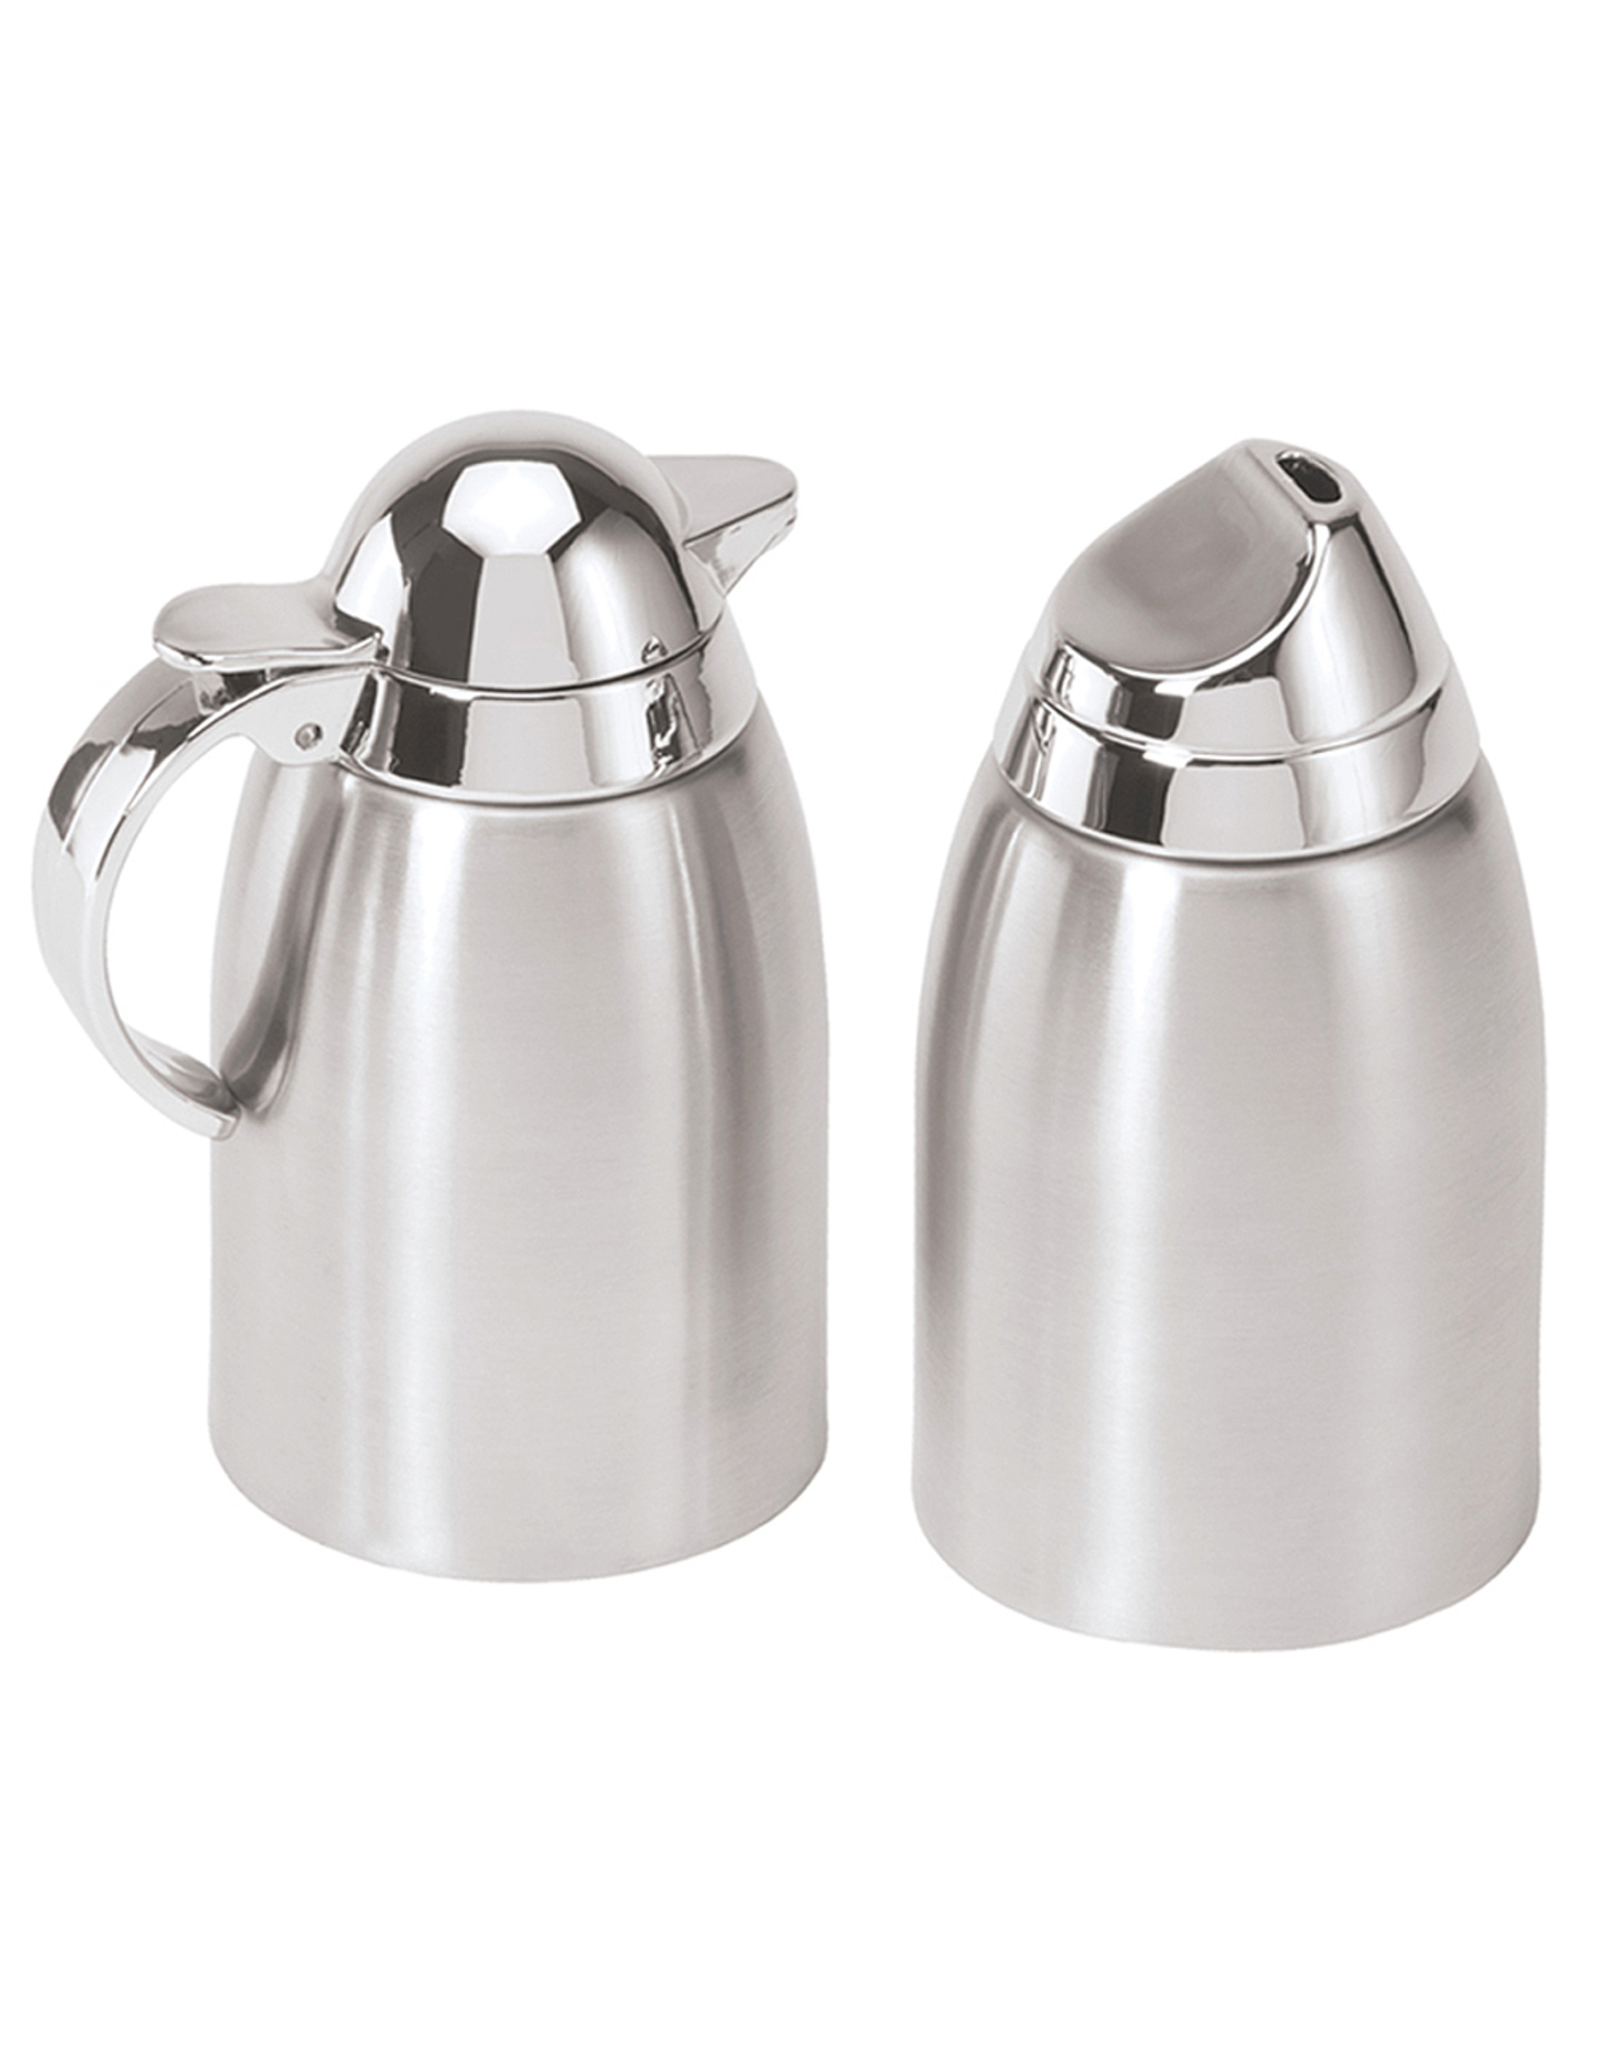 Oggi Stainless Steel Sugar And Creamer Set W Mirror Abs Tops Digs N Gifts